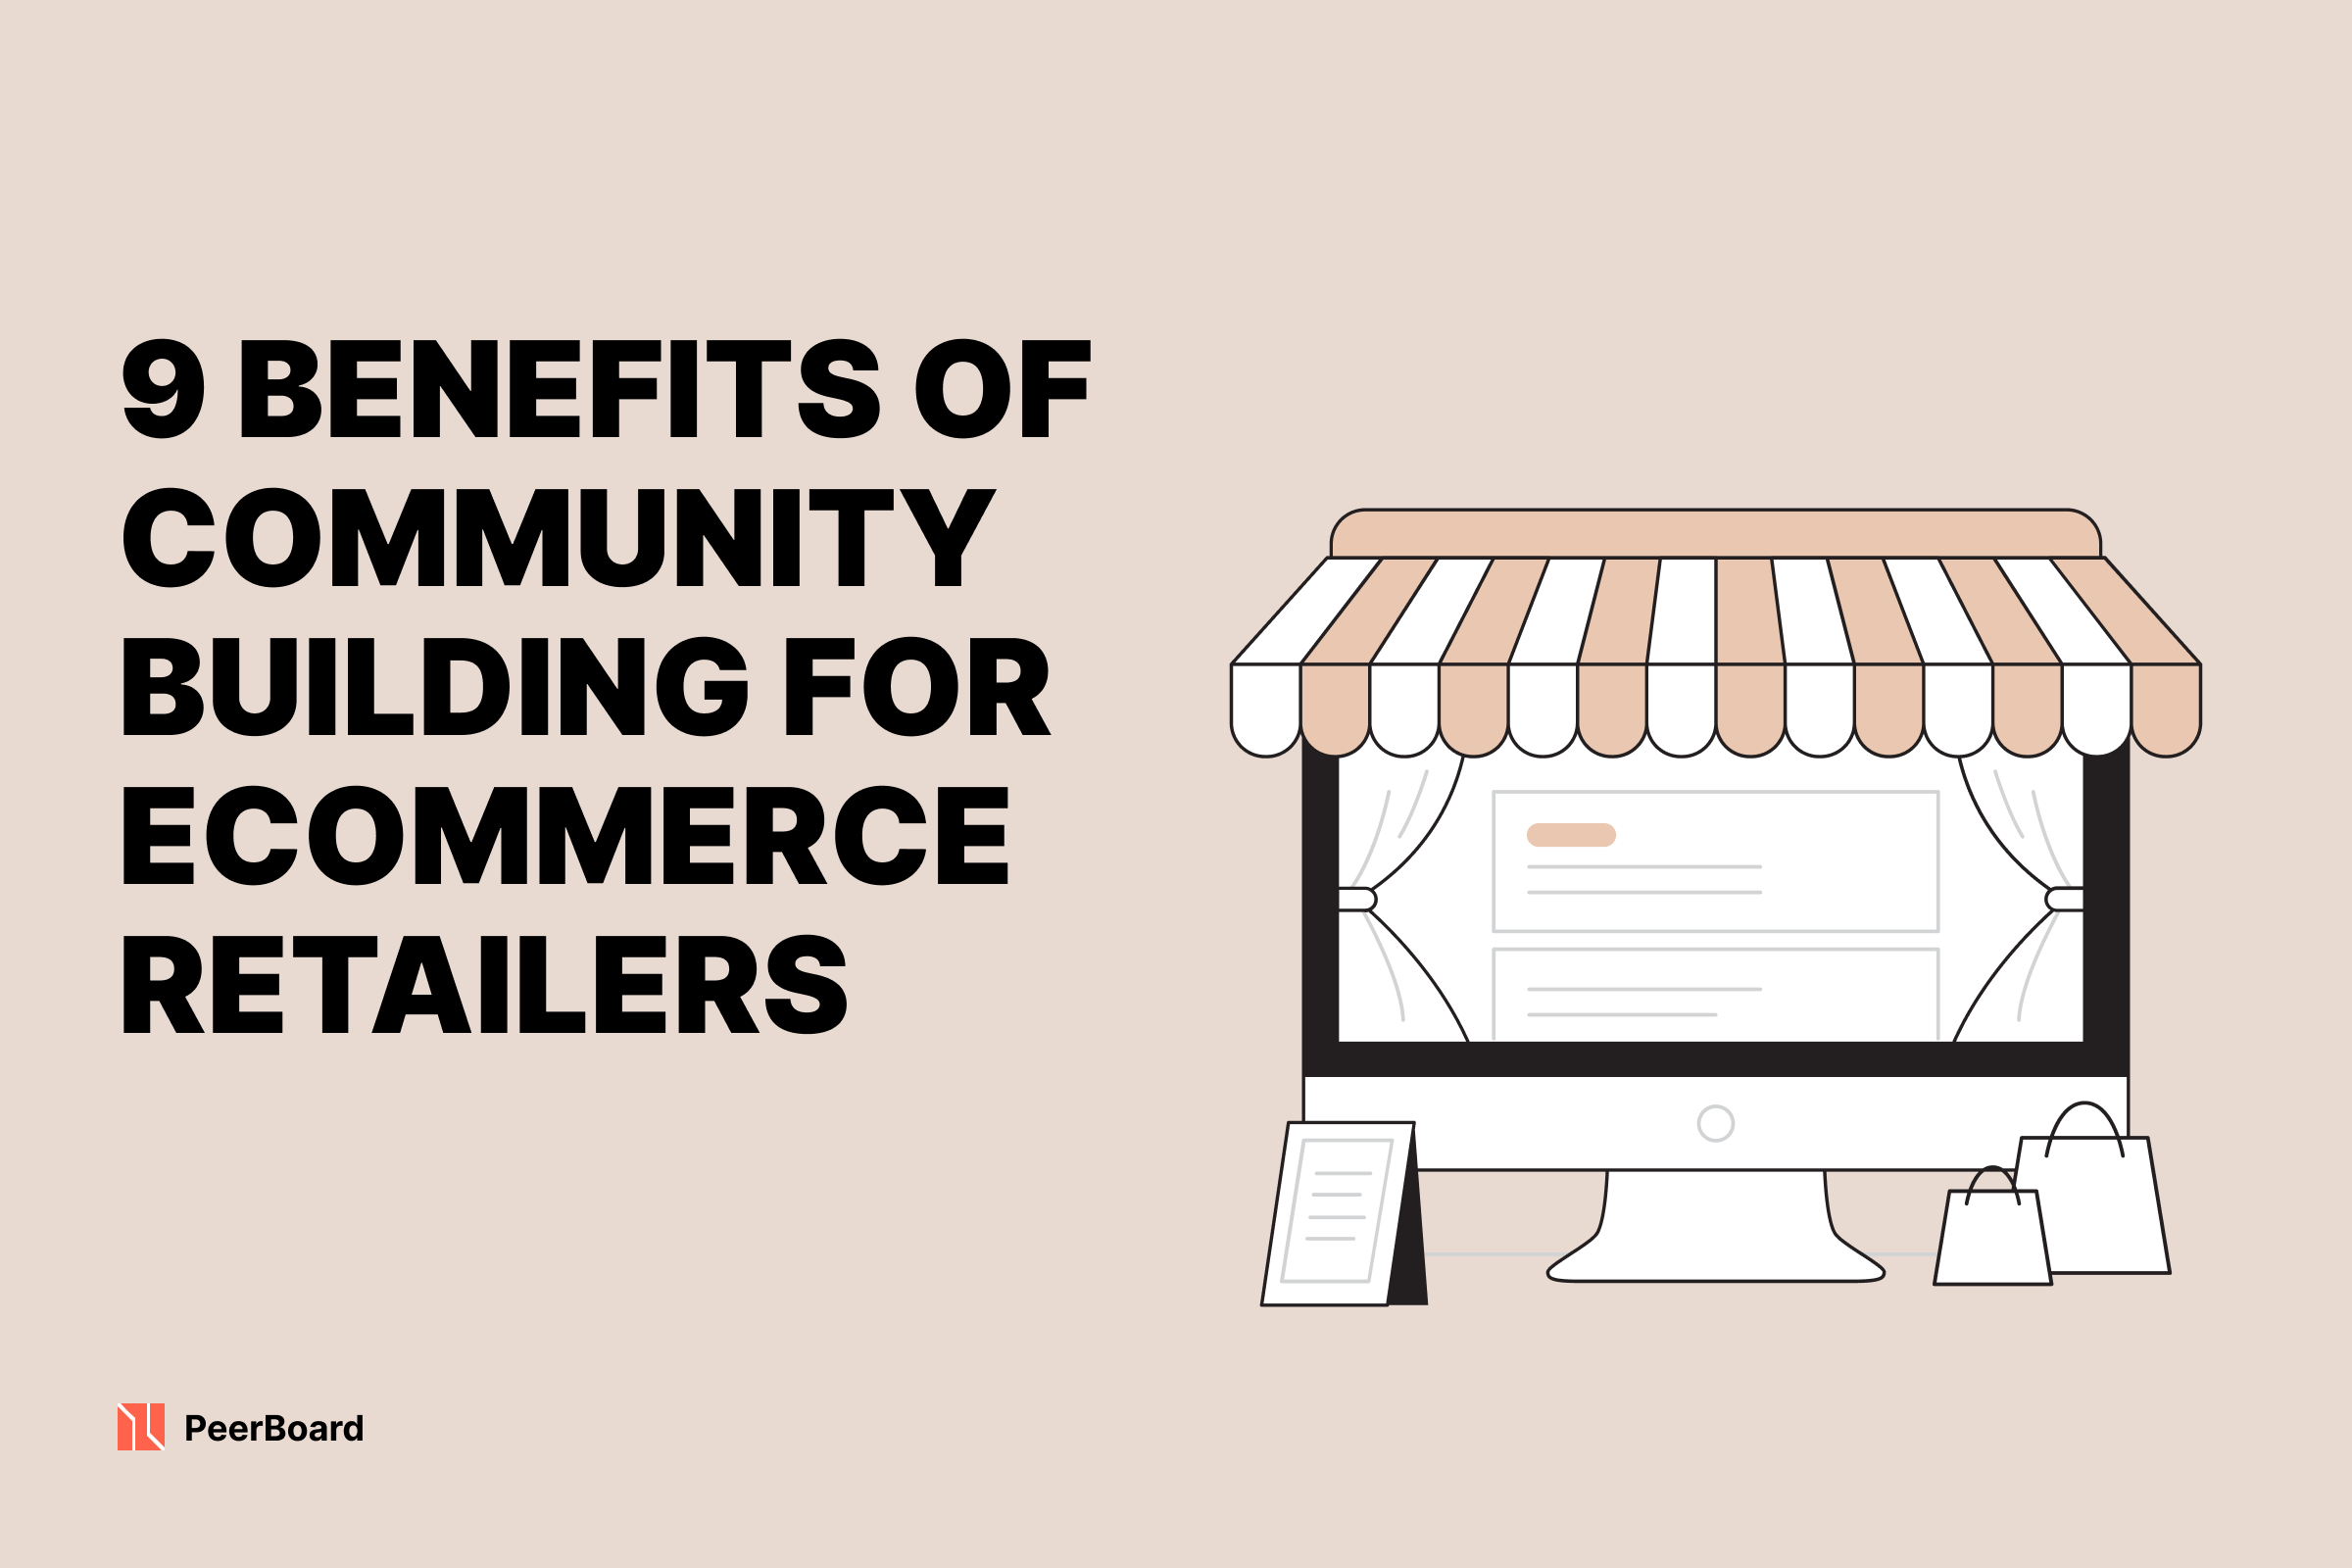 Benefits_of_Community_Building_for_Ecommerce_Retailers